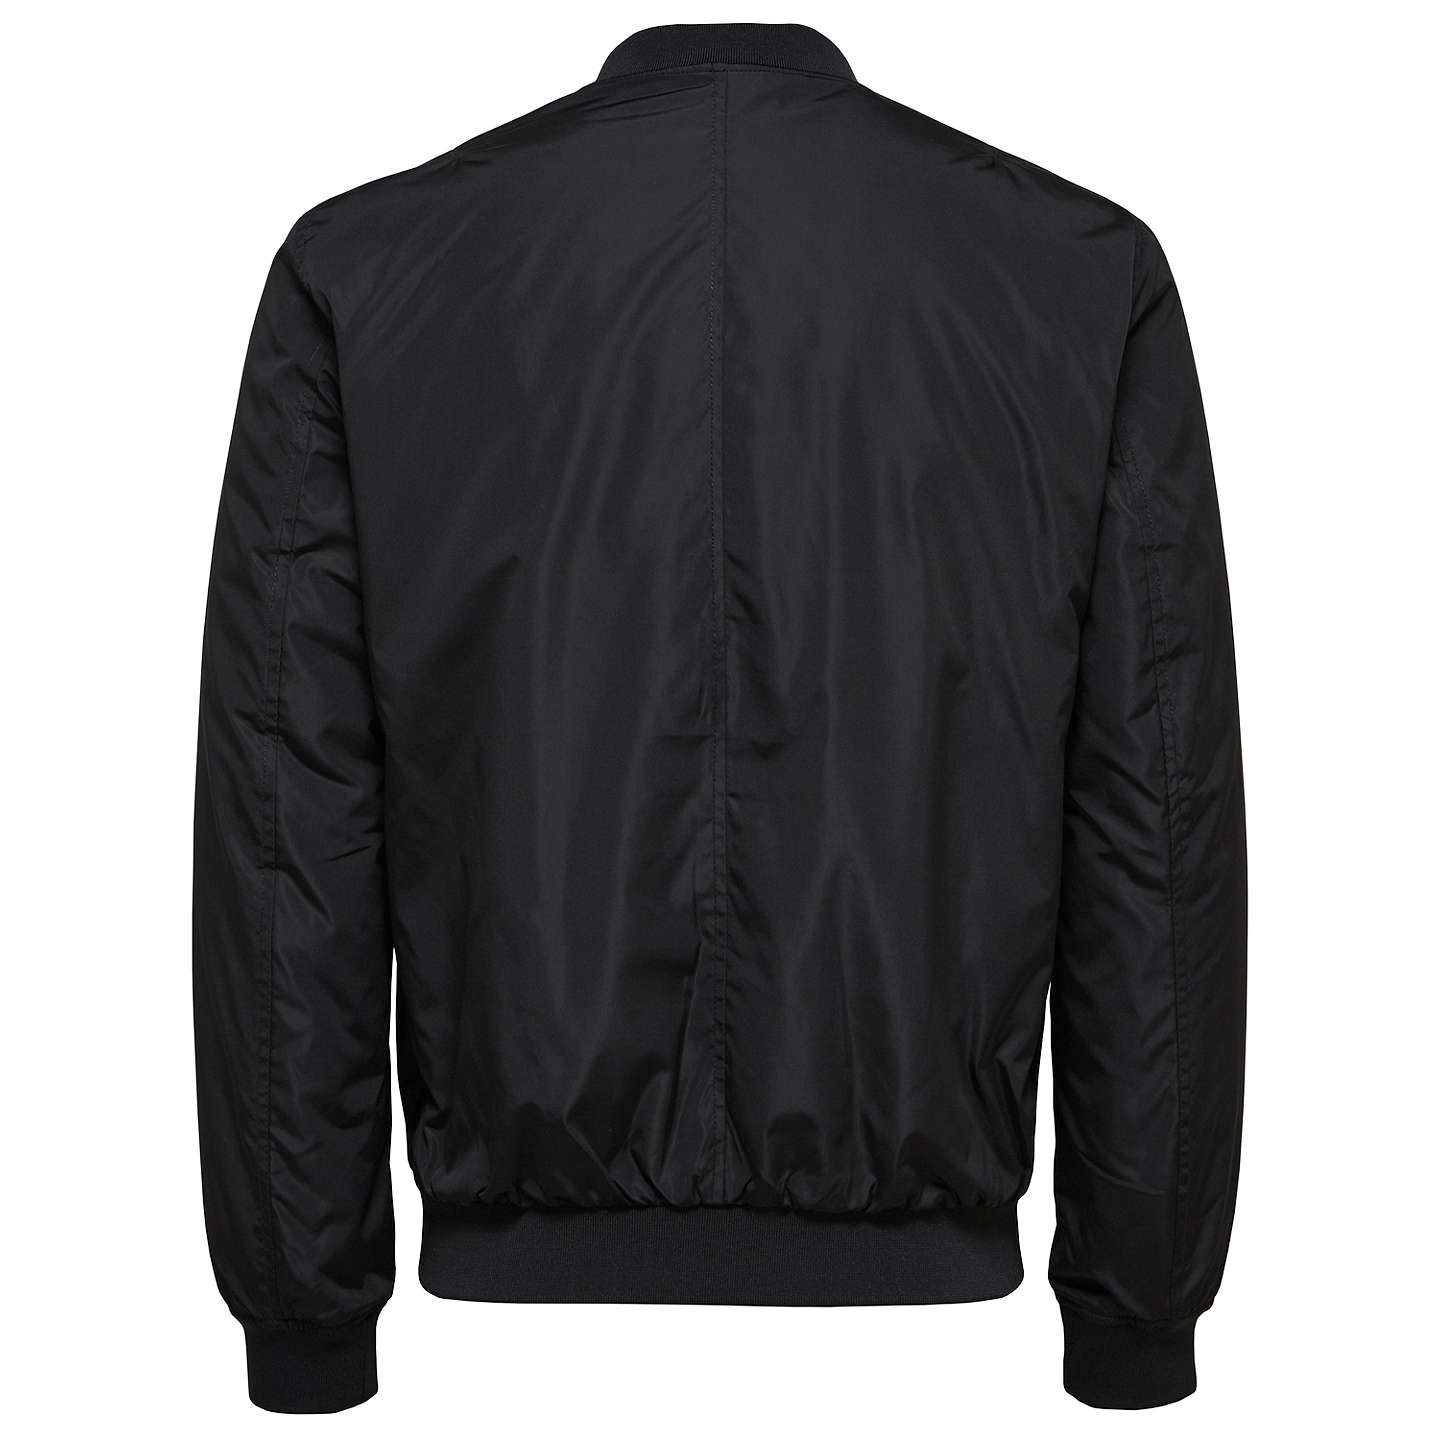 BuySelected Homme Felix Bomber Jacket, Black/Navy/Chilli Pepper, S Online at johnlewis.com